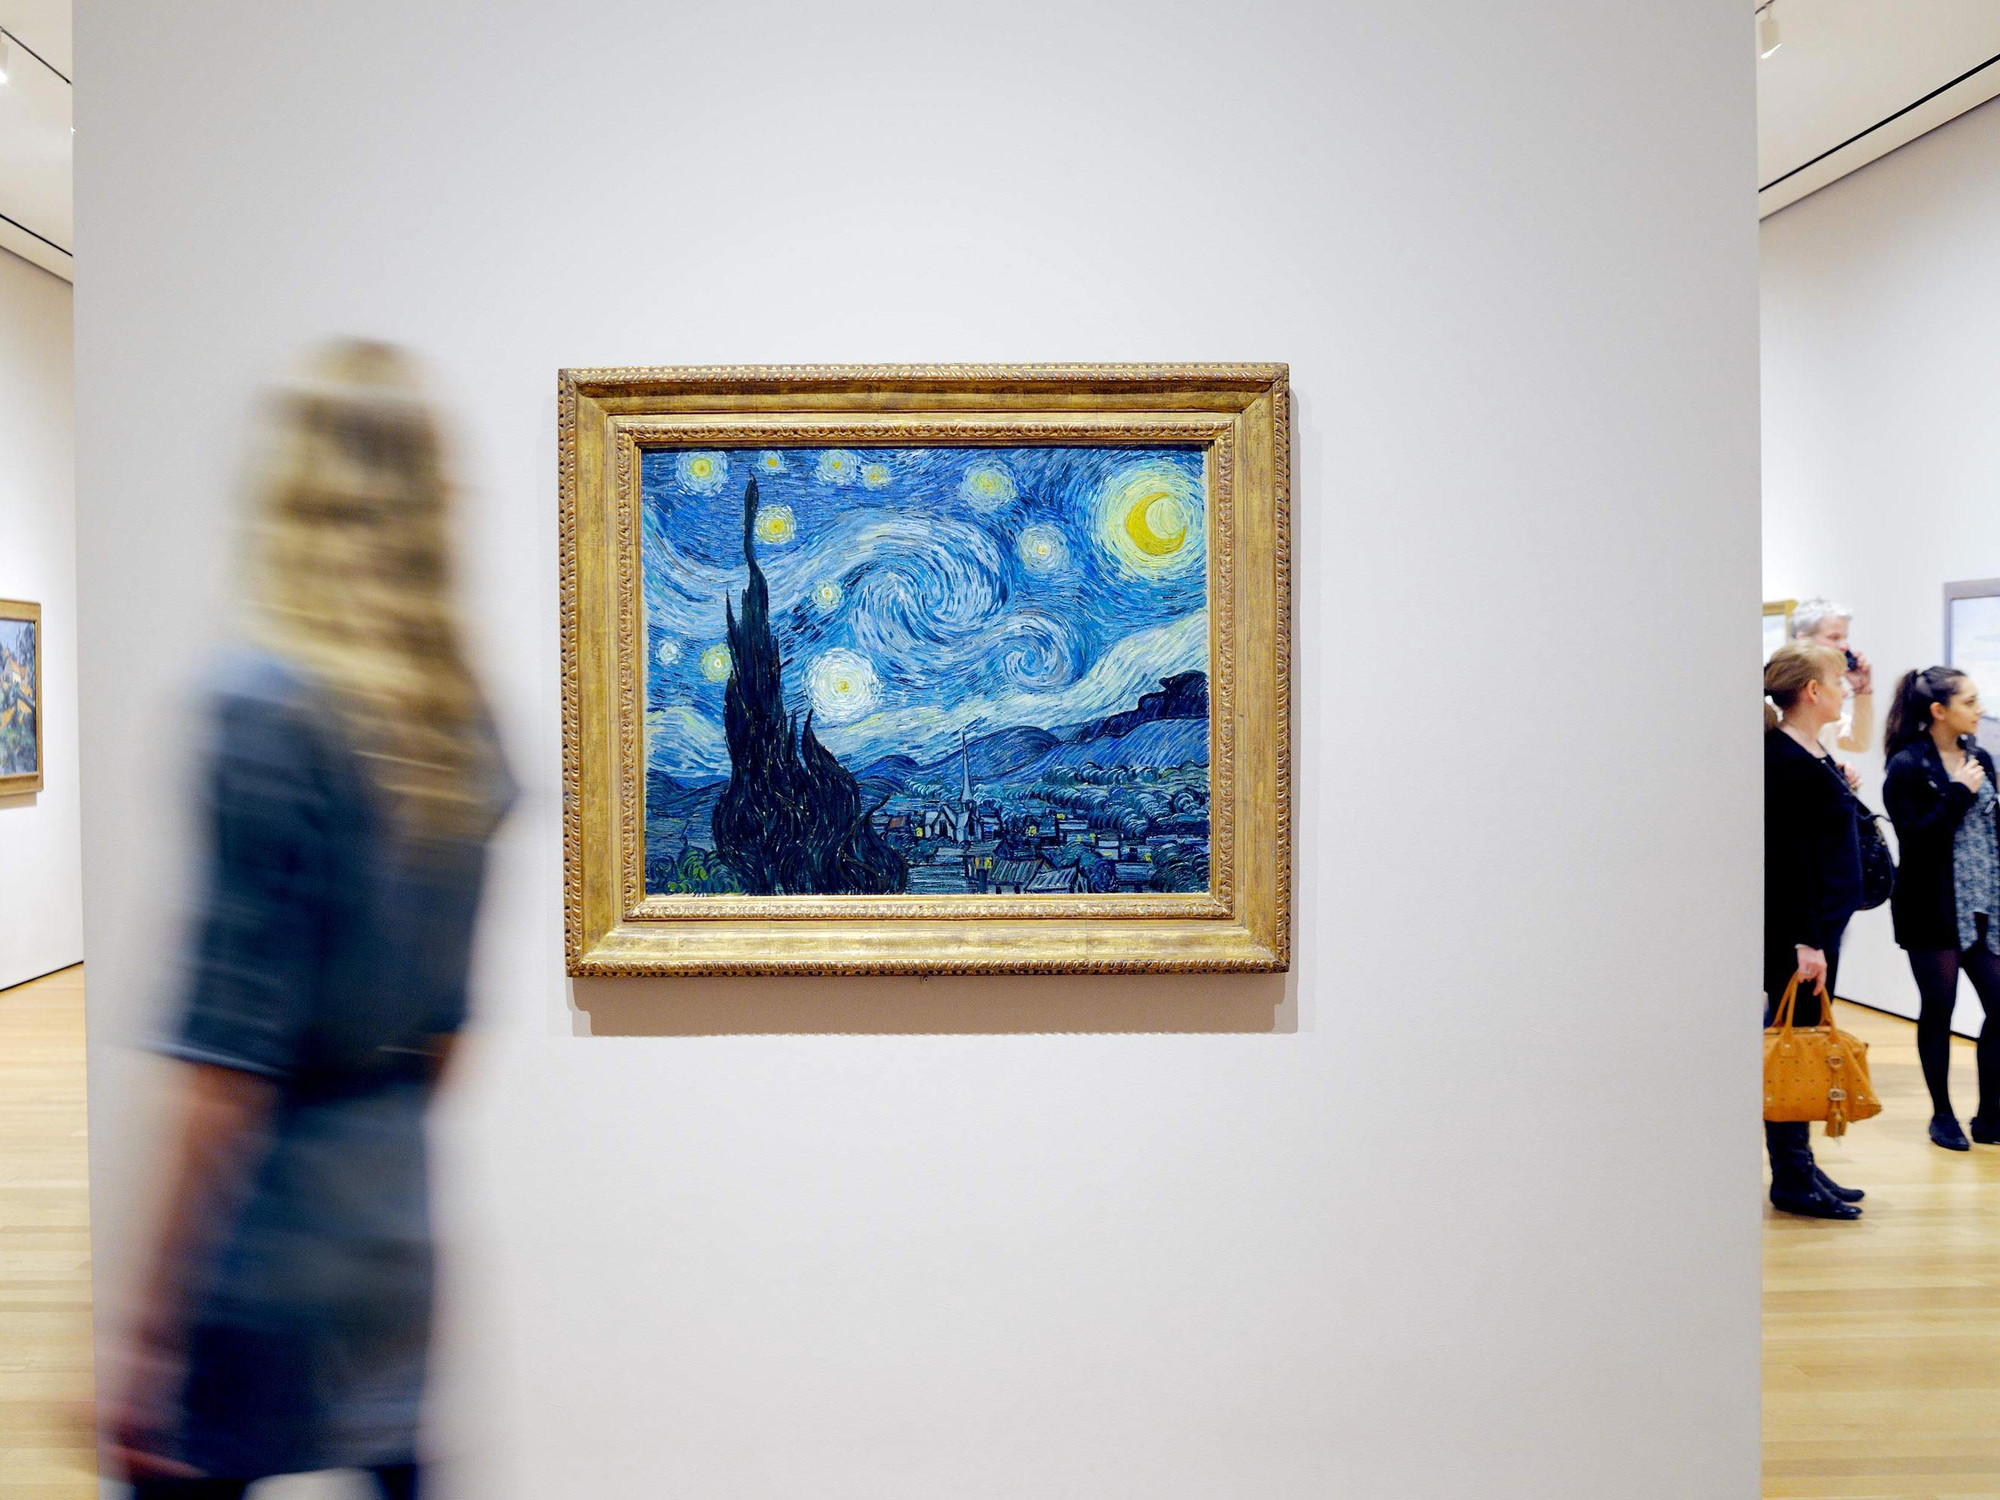 Visitors in the galleries. Shown: Vincent van Gogh. The Starry Night. 1889. Oil on canvas. Acquired through the Lillie P. Bliss Bequest. © 2017 The Museum of Modern Art. Photo: Martin Seck